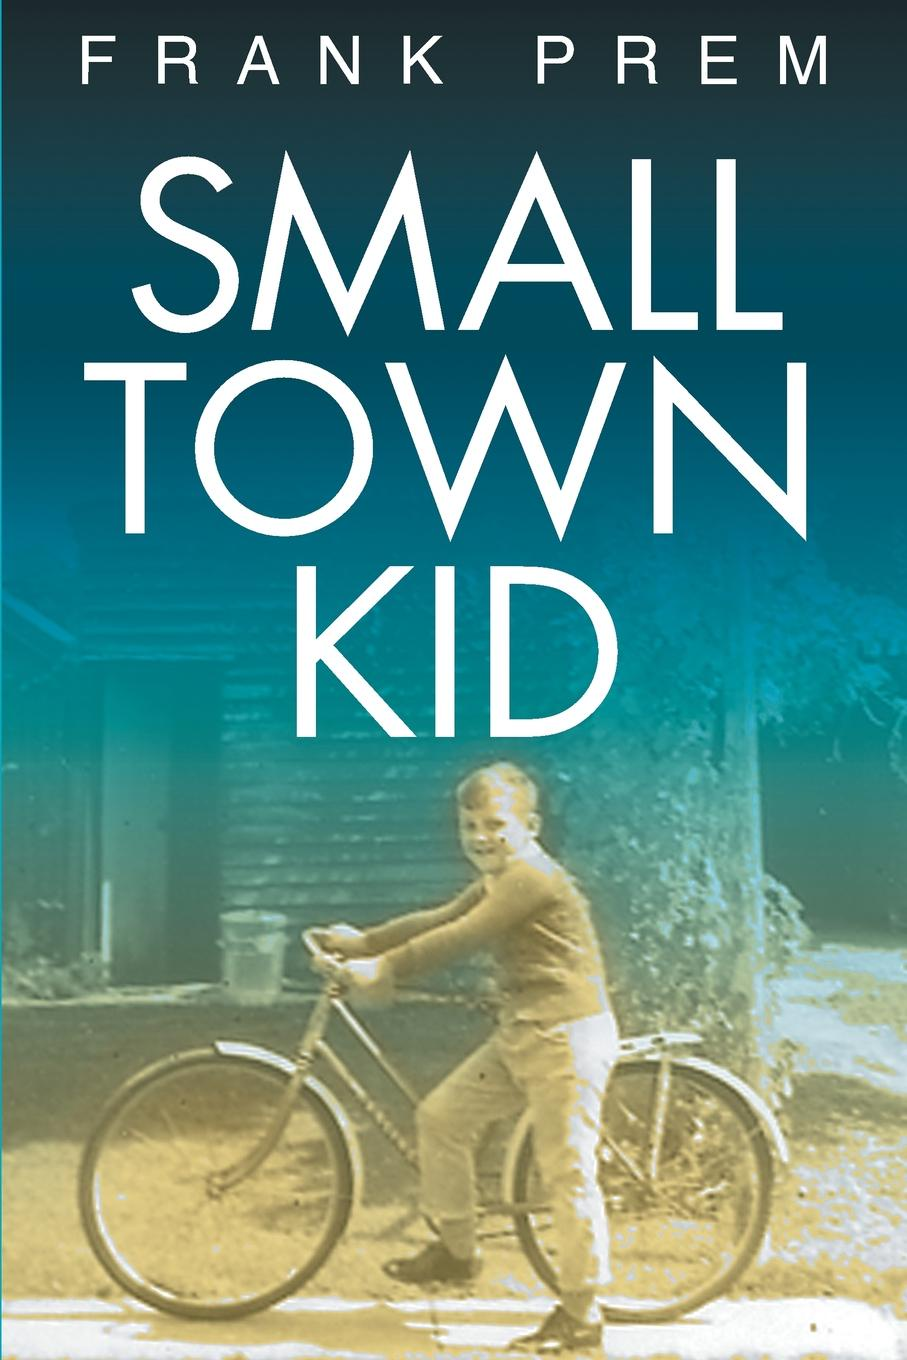 Frank Prem Small Town Kid